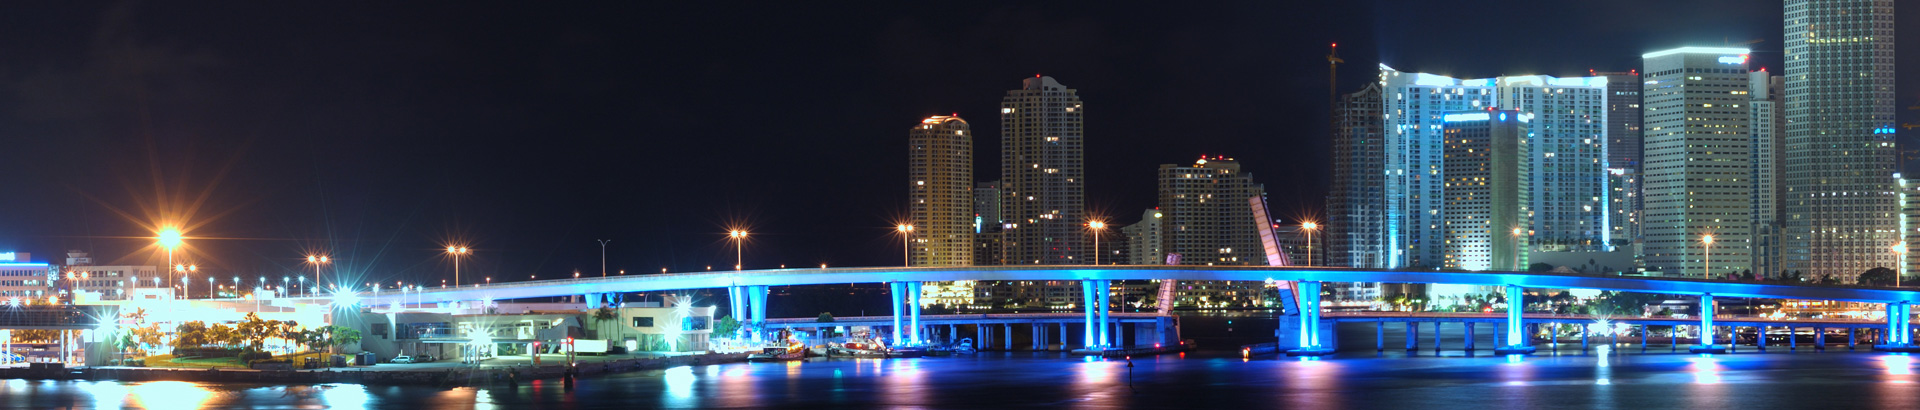 miami-downtown-at-night